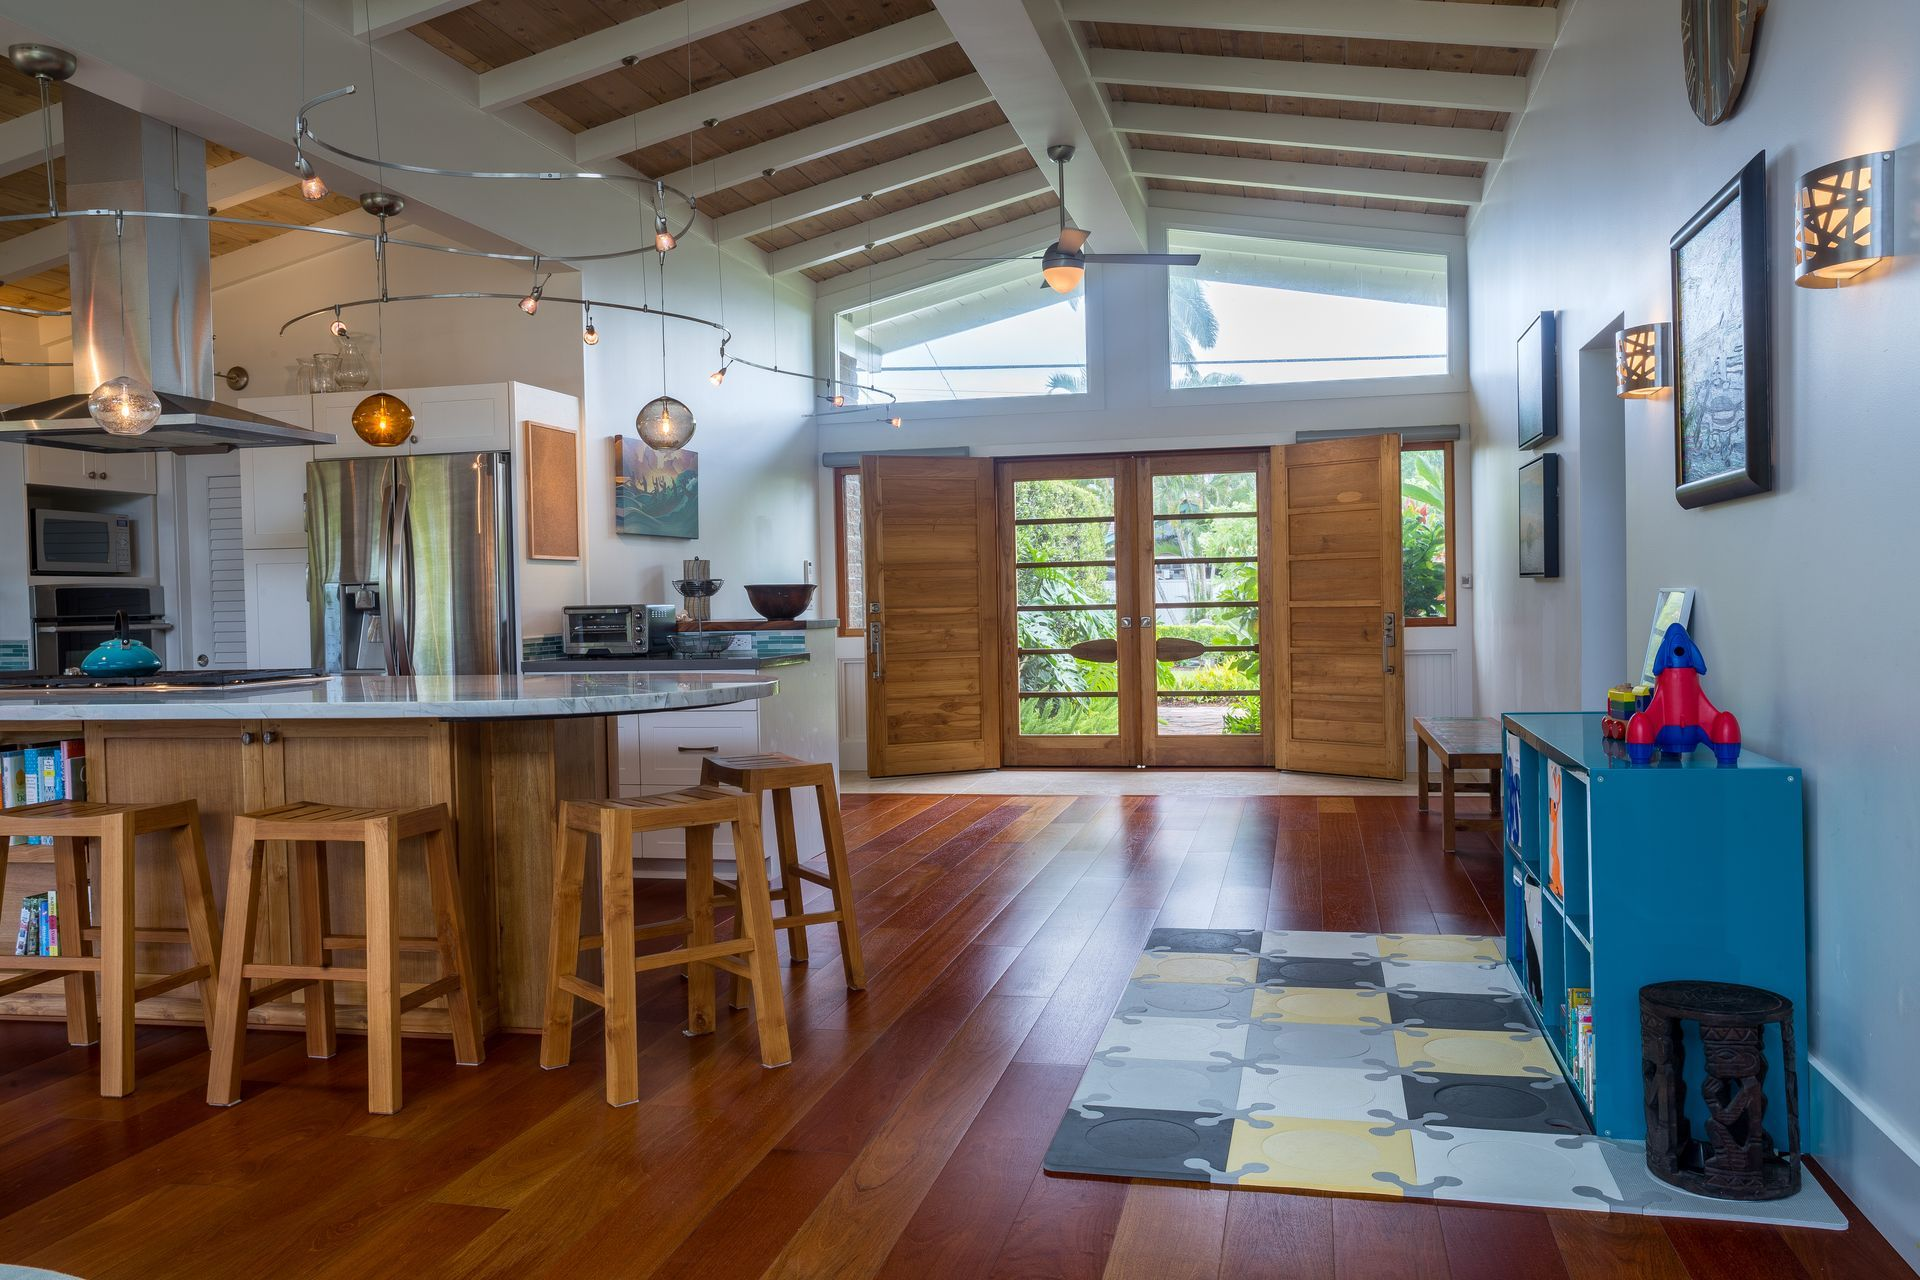 ATSA_TRIGG-SMITH_KAILUA-PLANTATION-MODERN_2014_03